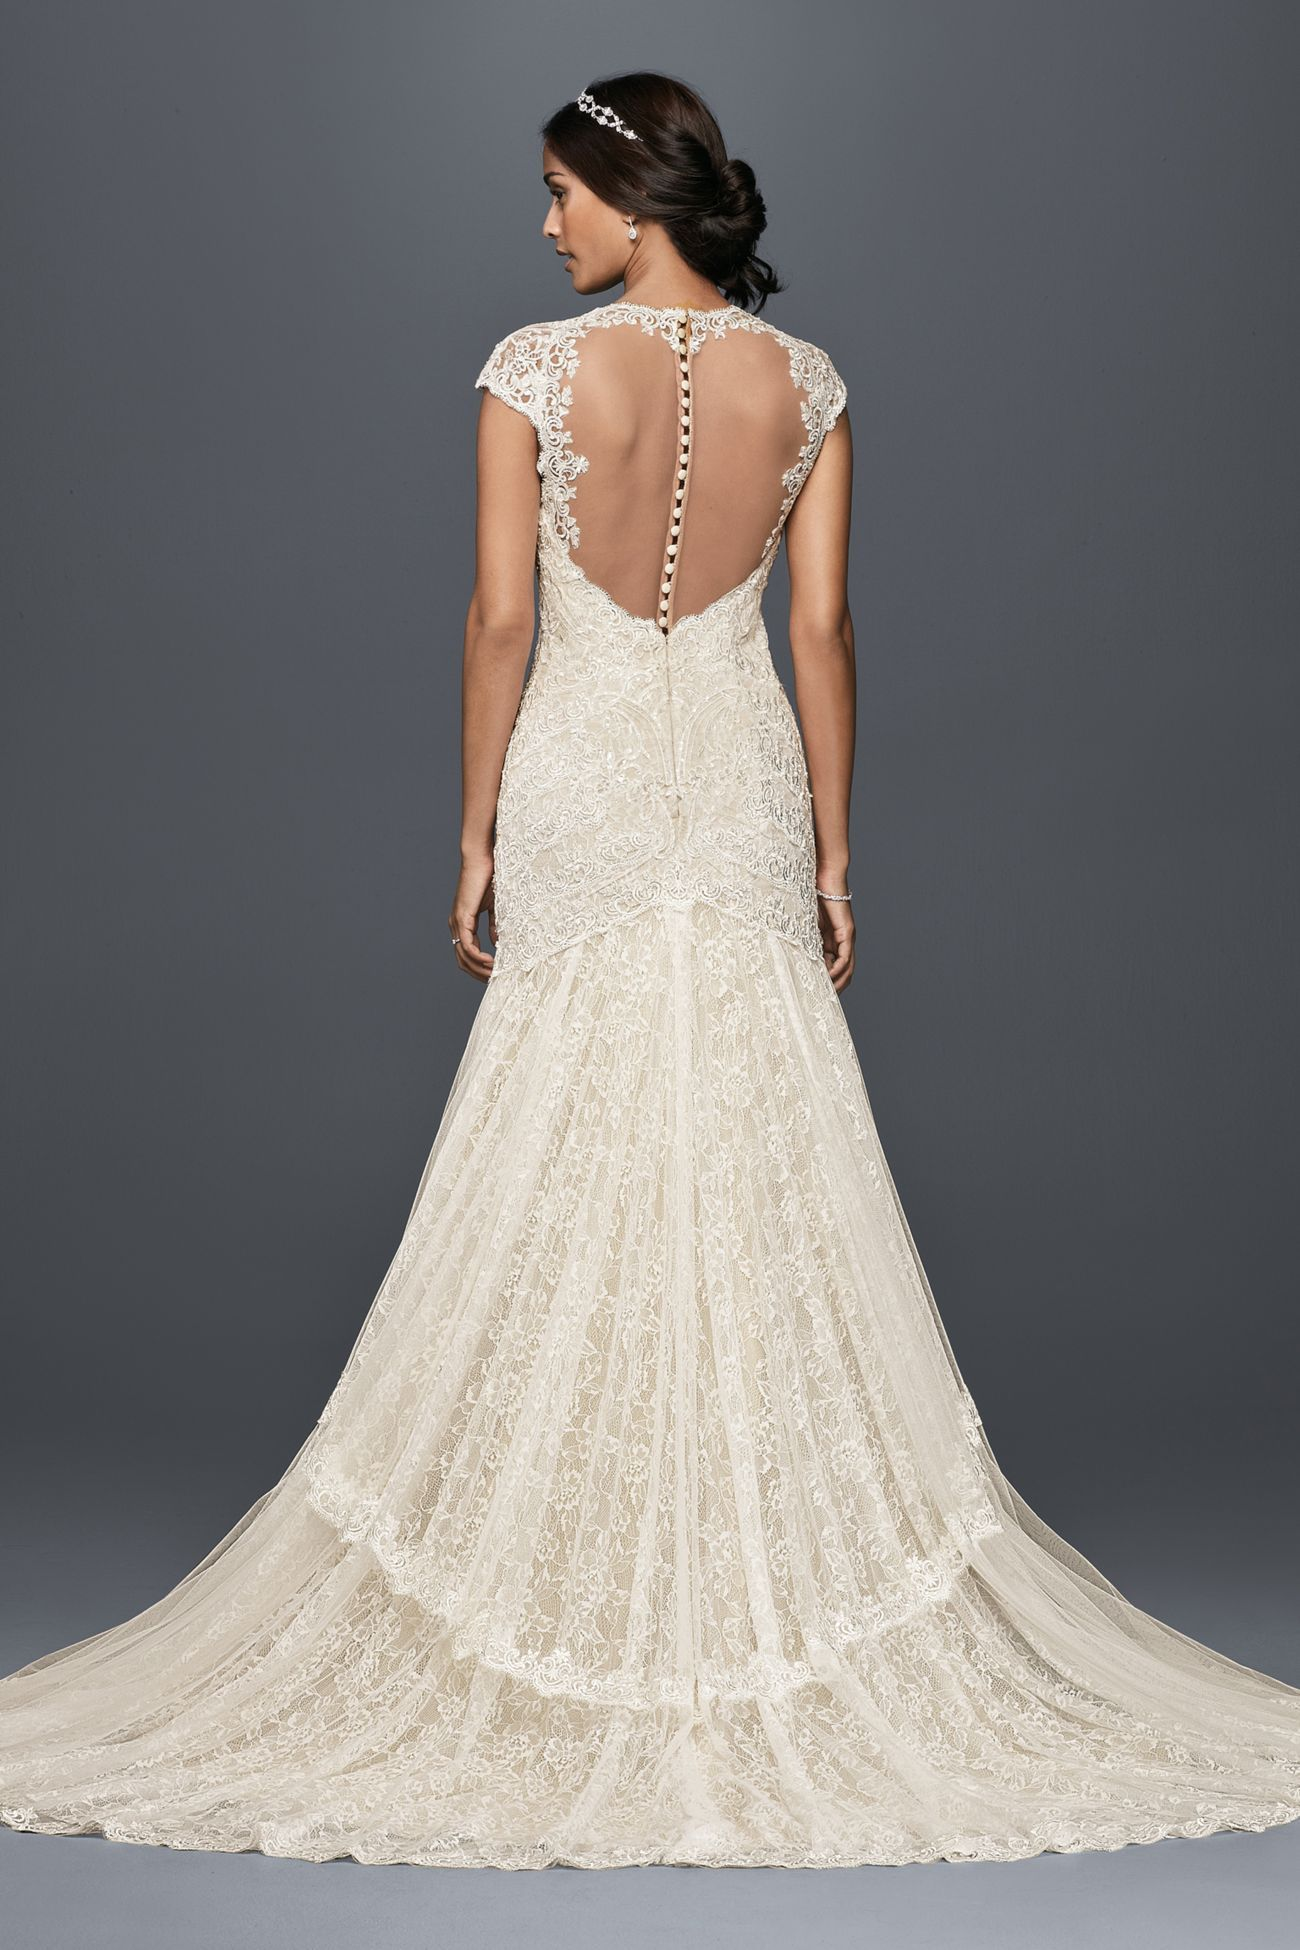 0e3f837811e09 Tiered Lace Mermaid Wedding Dress with Beading by Melissa Sweet (David's  Bridal Exclusive) -- MS251175 at David's Bridal (Love the bodice, sleeves,  back, ...